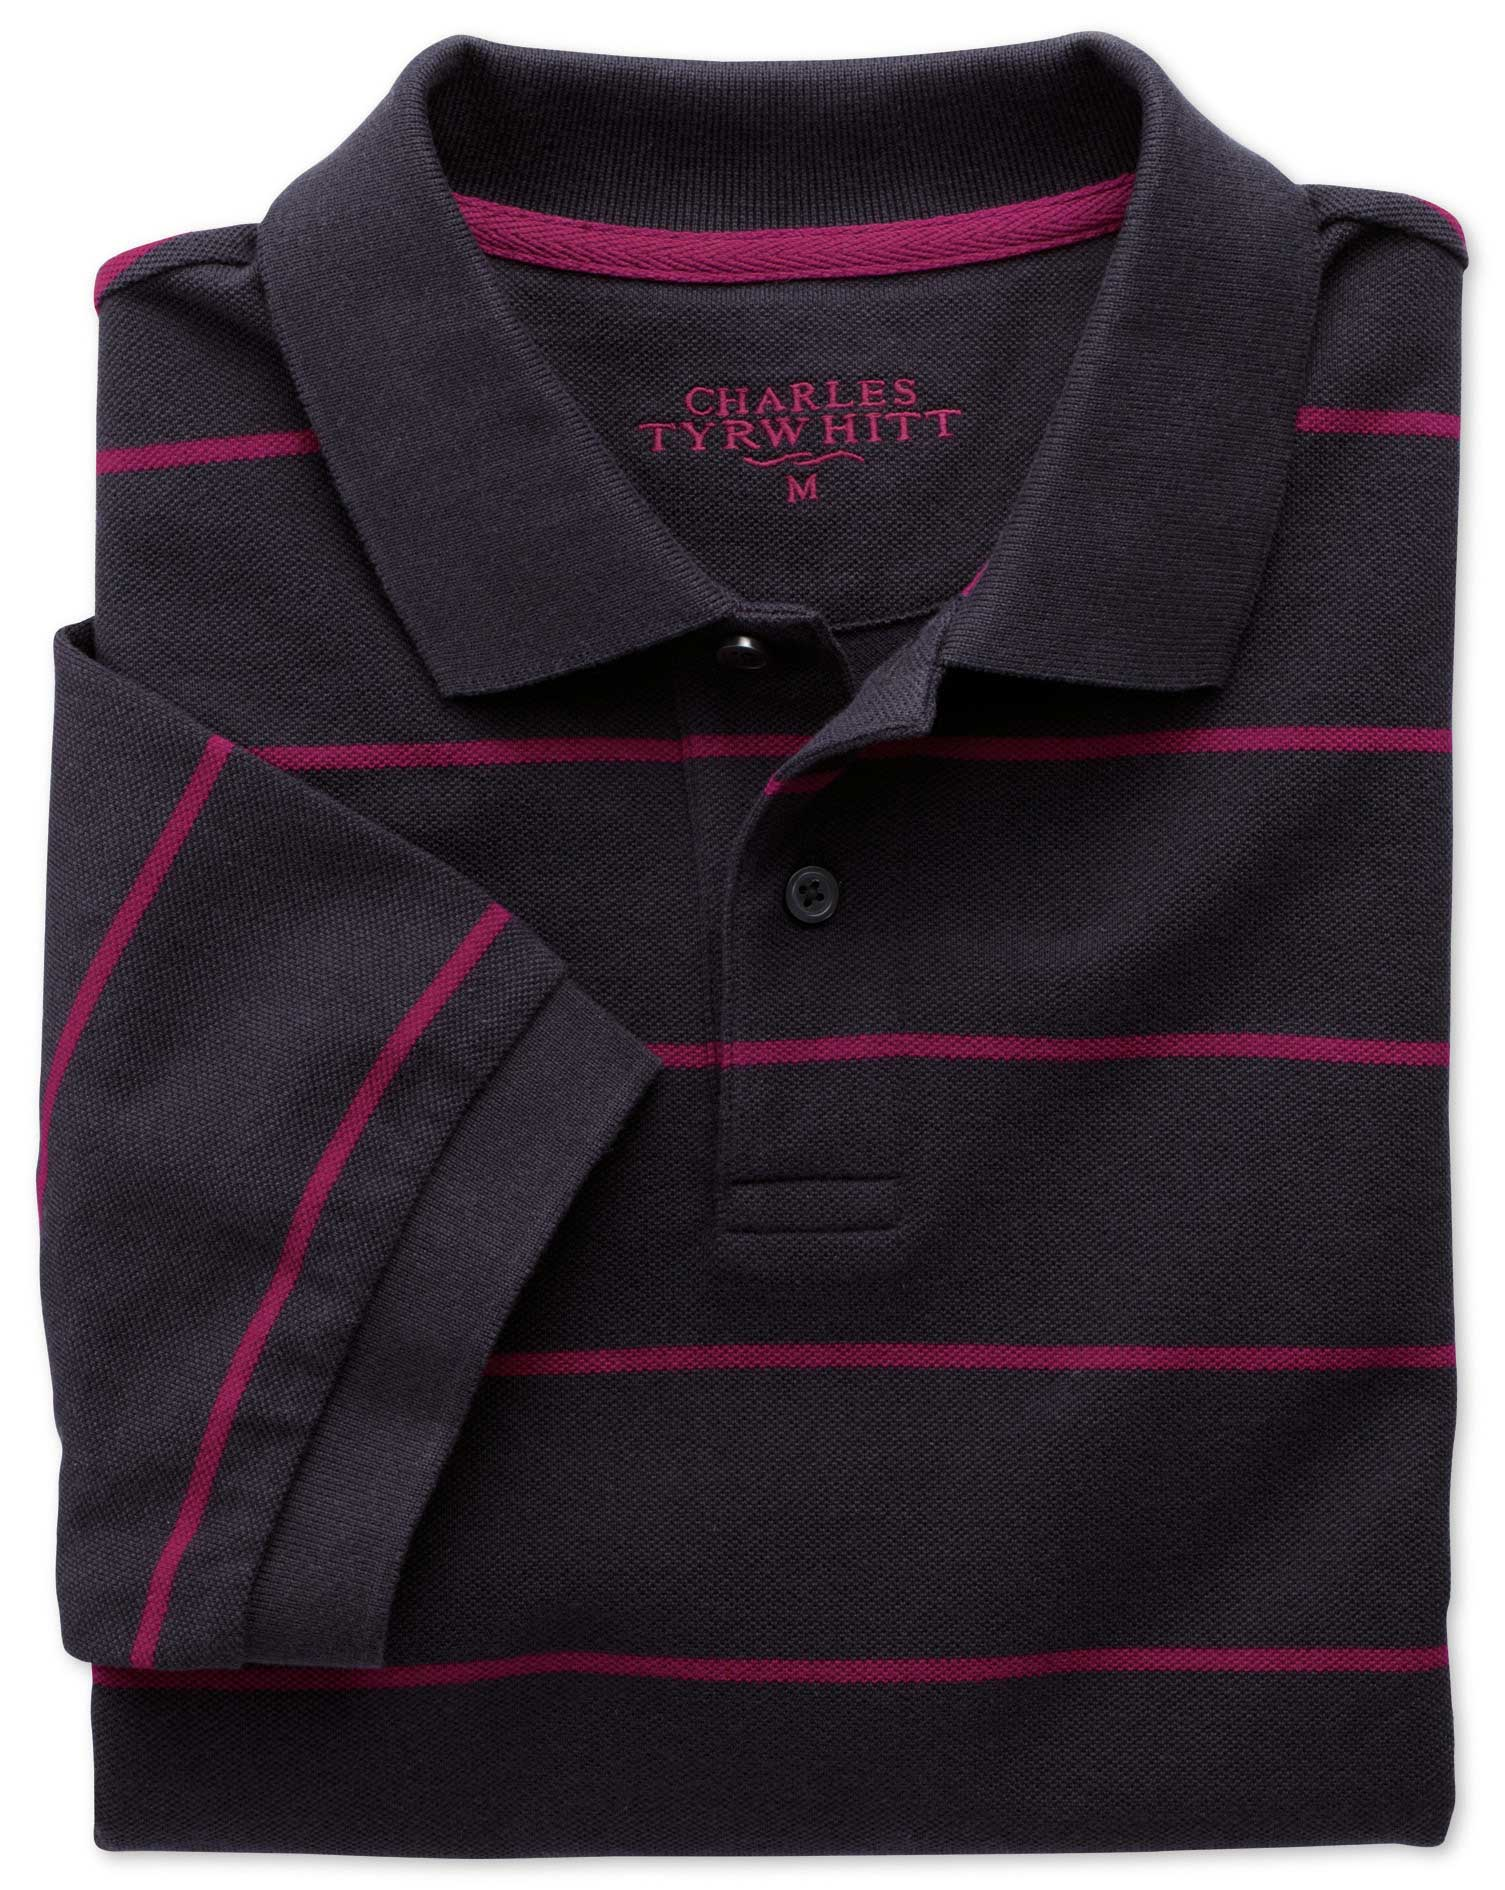 Navy and Berry Stripe Pique Cotton Polo Size Medium by Charles Tyrwhitt